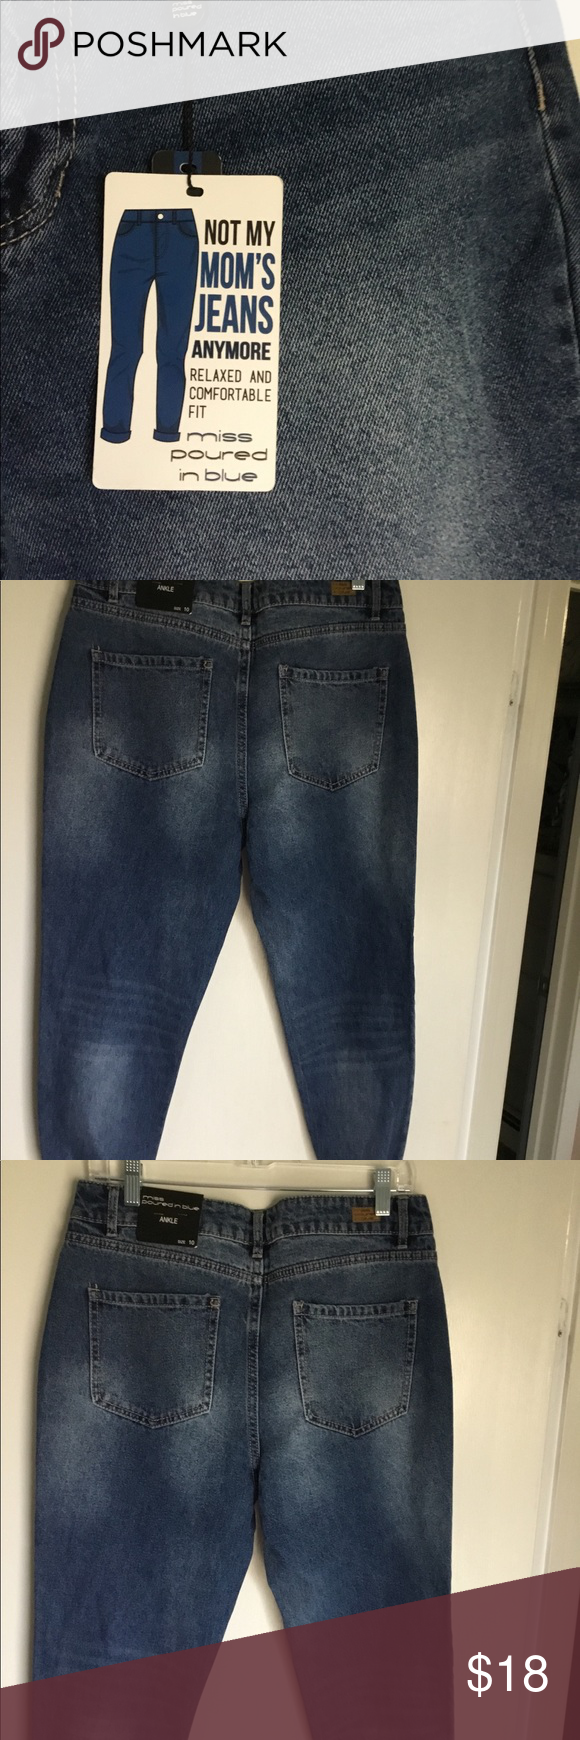 Miss Poured In Blue Jeans 100 Cotton Jeans Straight Leg Blue Jeans 100 Cotton Jeans Mom Jeans